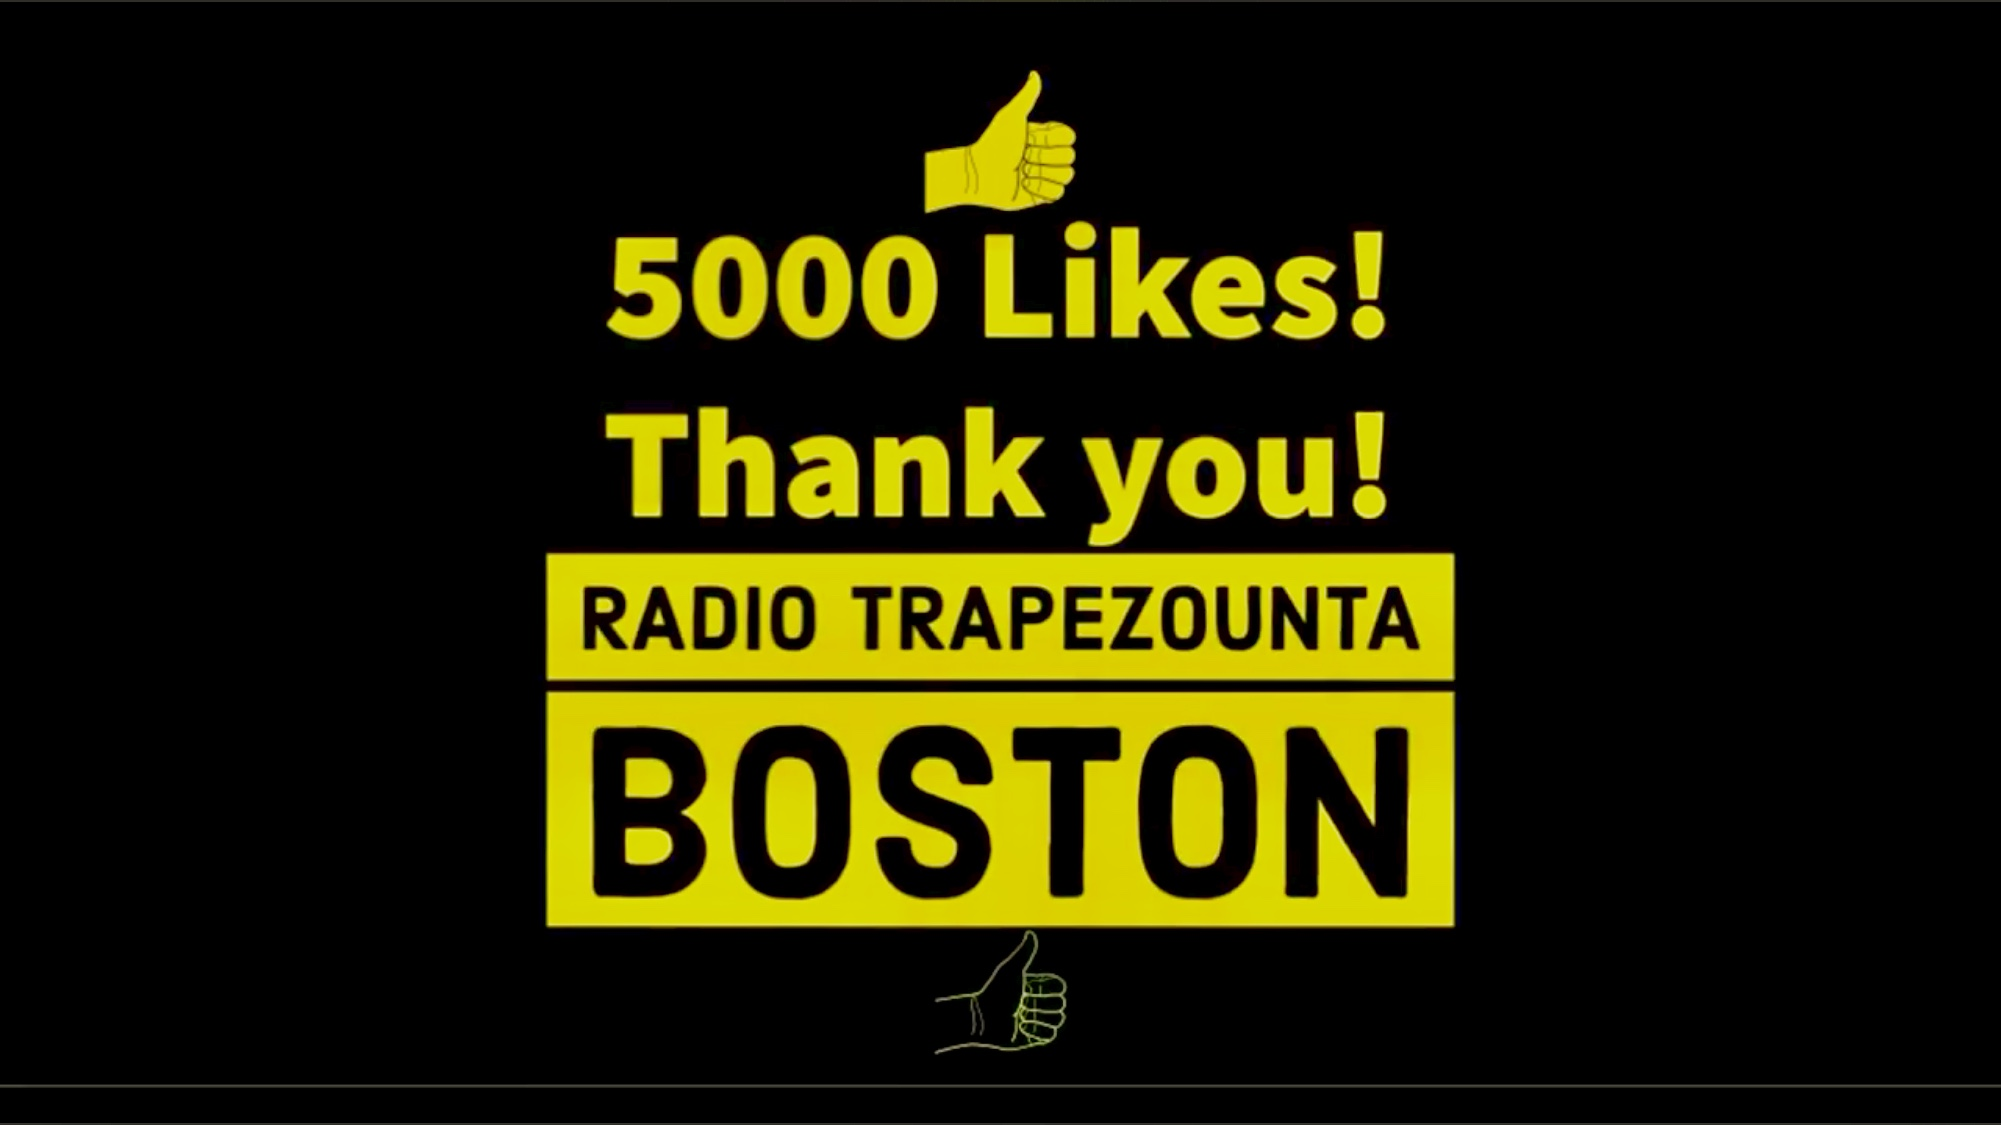 5000 Likes on our Facebook Page! Radio Trapezounta Boston